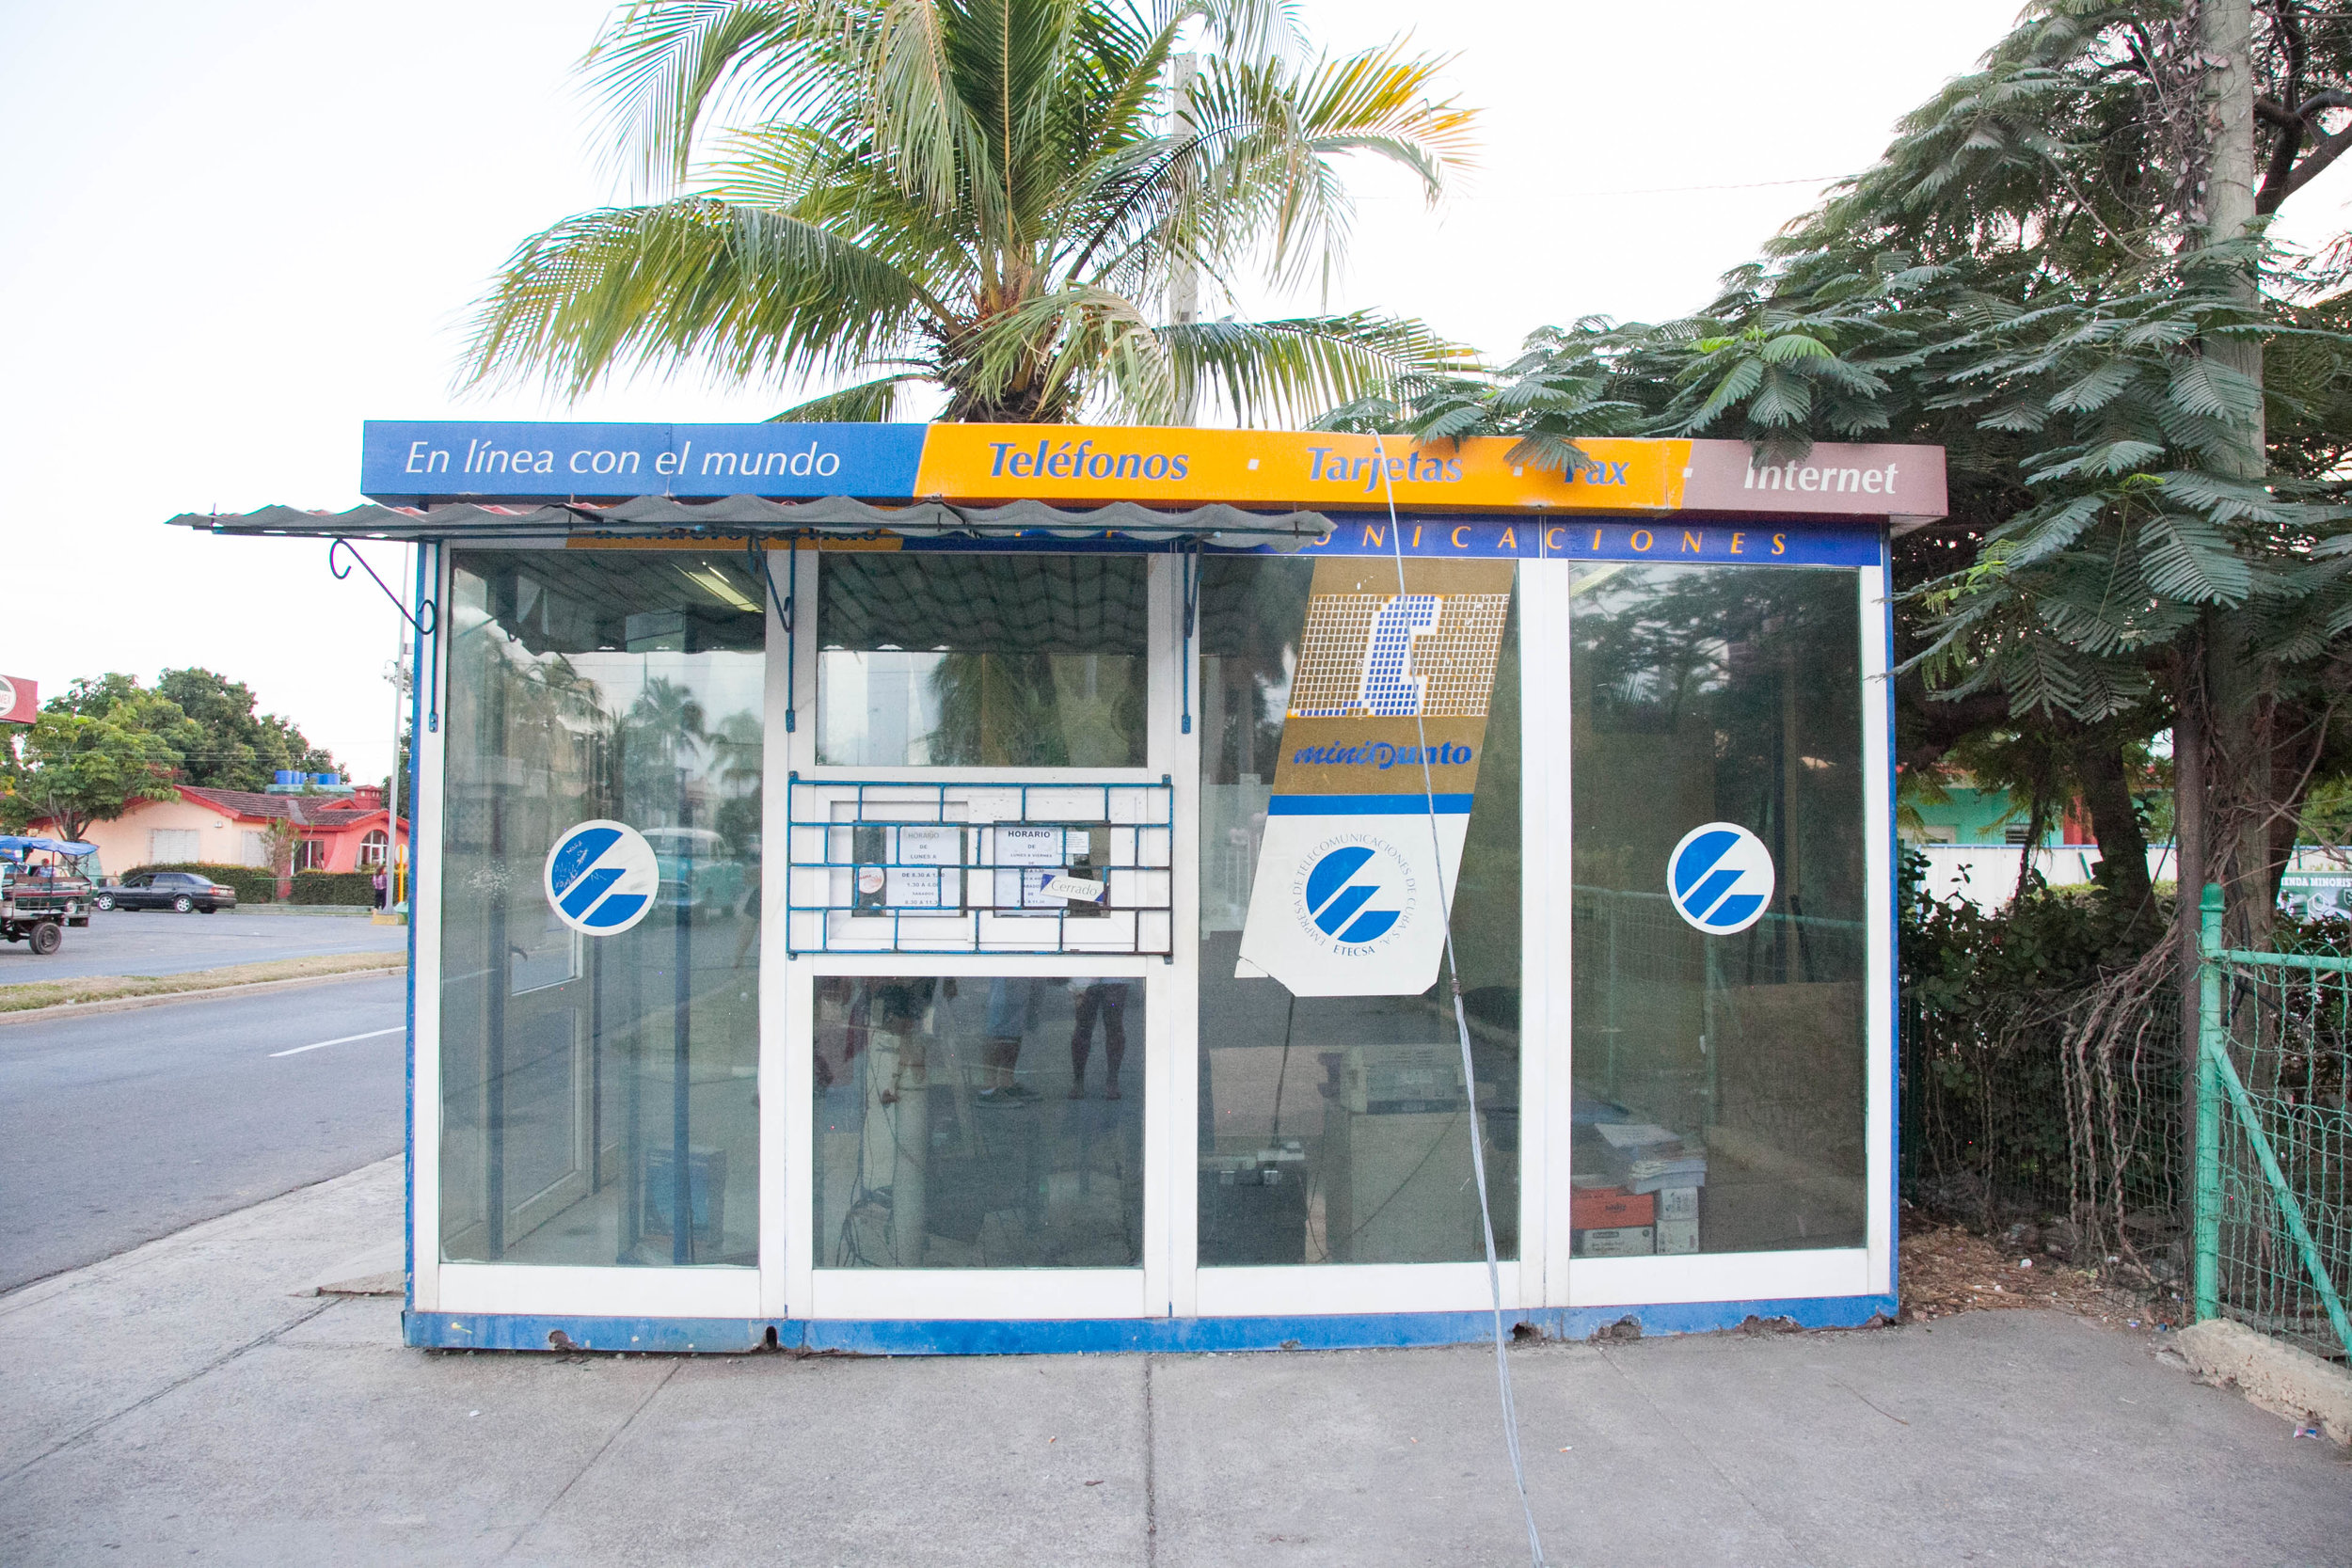 Etecsa booth, where you can buy a Wi-Fi, in Cienfuegos